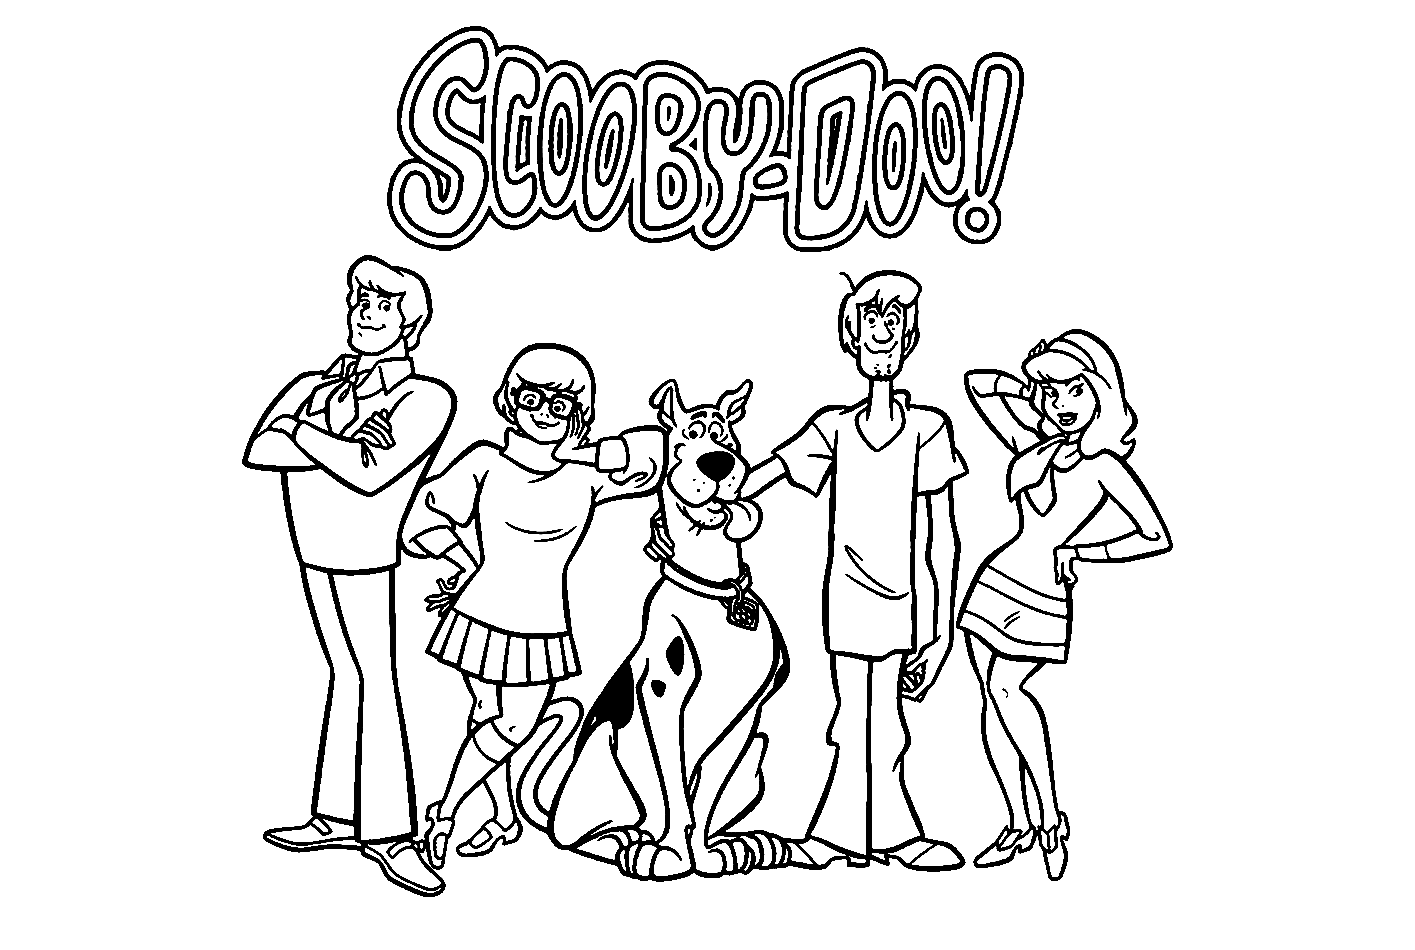 Printable Coloring Page of Scoby Doo Team Fred Velma Scooby Shaggy Daphne